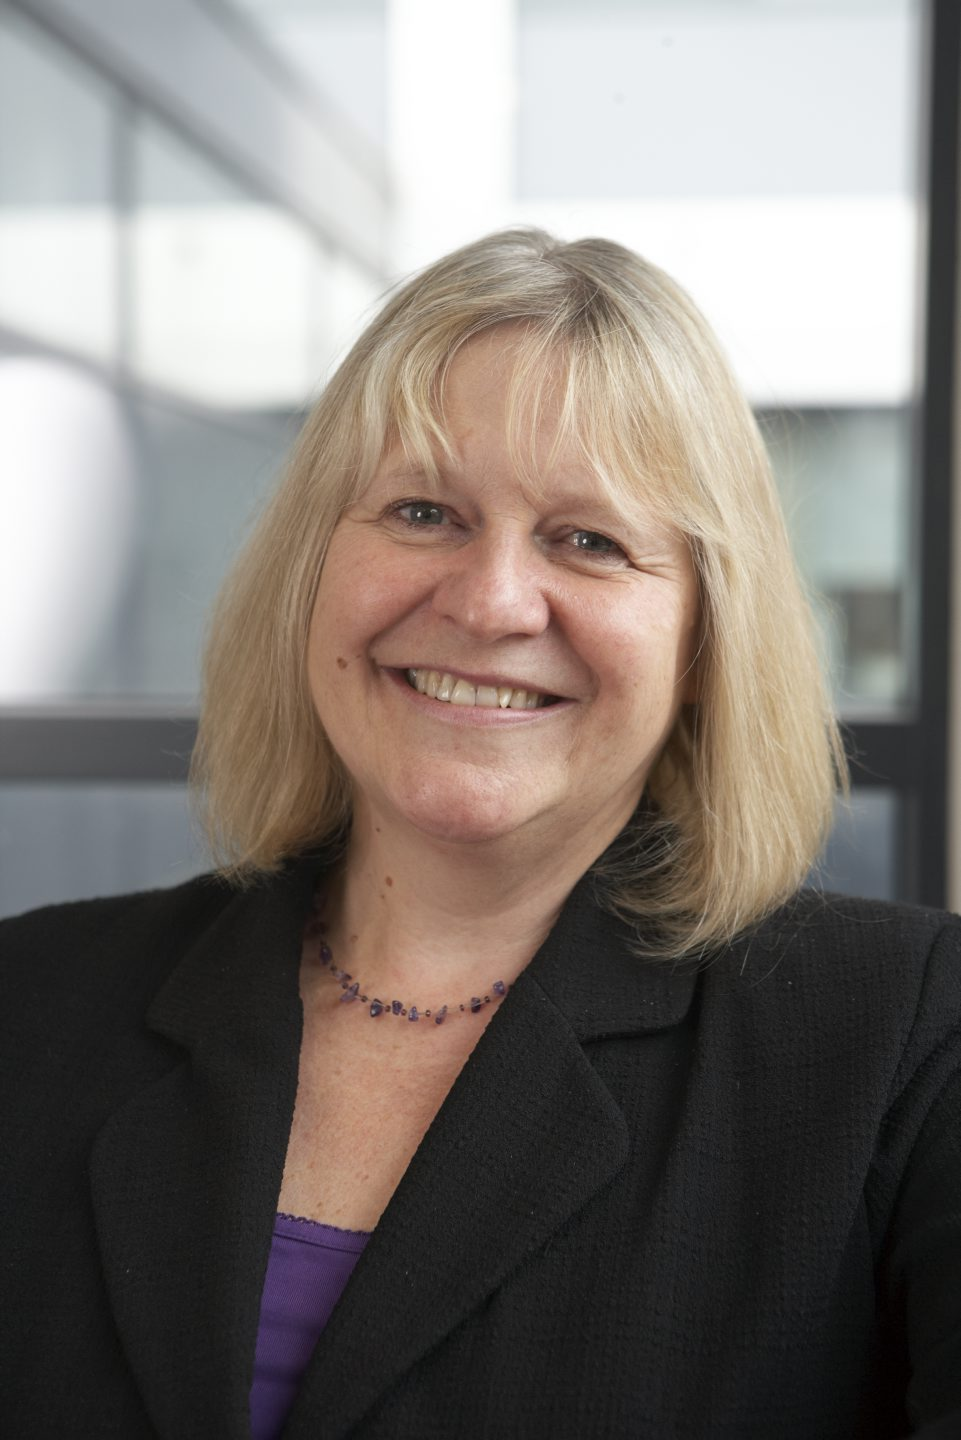 Jo Verran   Jo is Emeritus Professor of Microbiology at Manchester Metropolitan University. She headed the Science Communication and Public Engagement activities at the University, and practices cross-disciplinary collaborations to enhance audience participation and engagement. Jo is the recipient of the  2019 Mani L Bhaumik AAAS award for Public Engagement with Science .